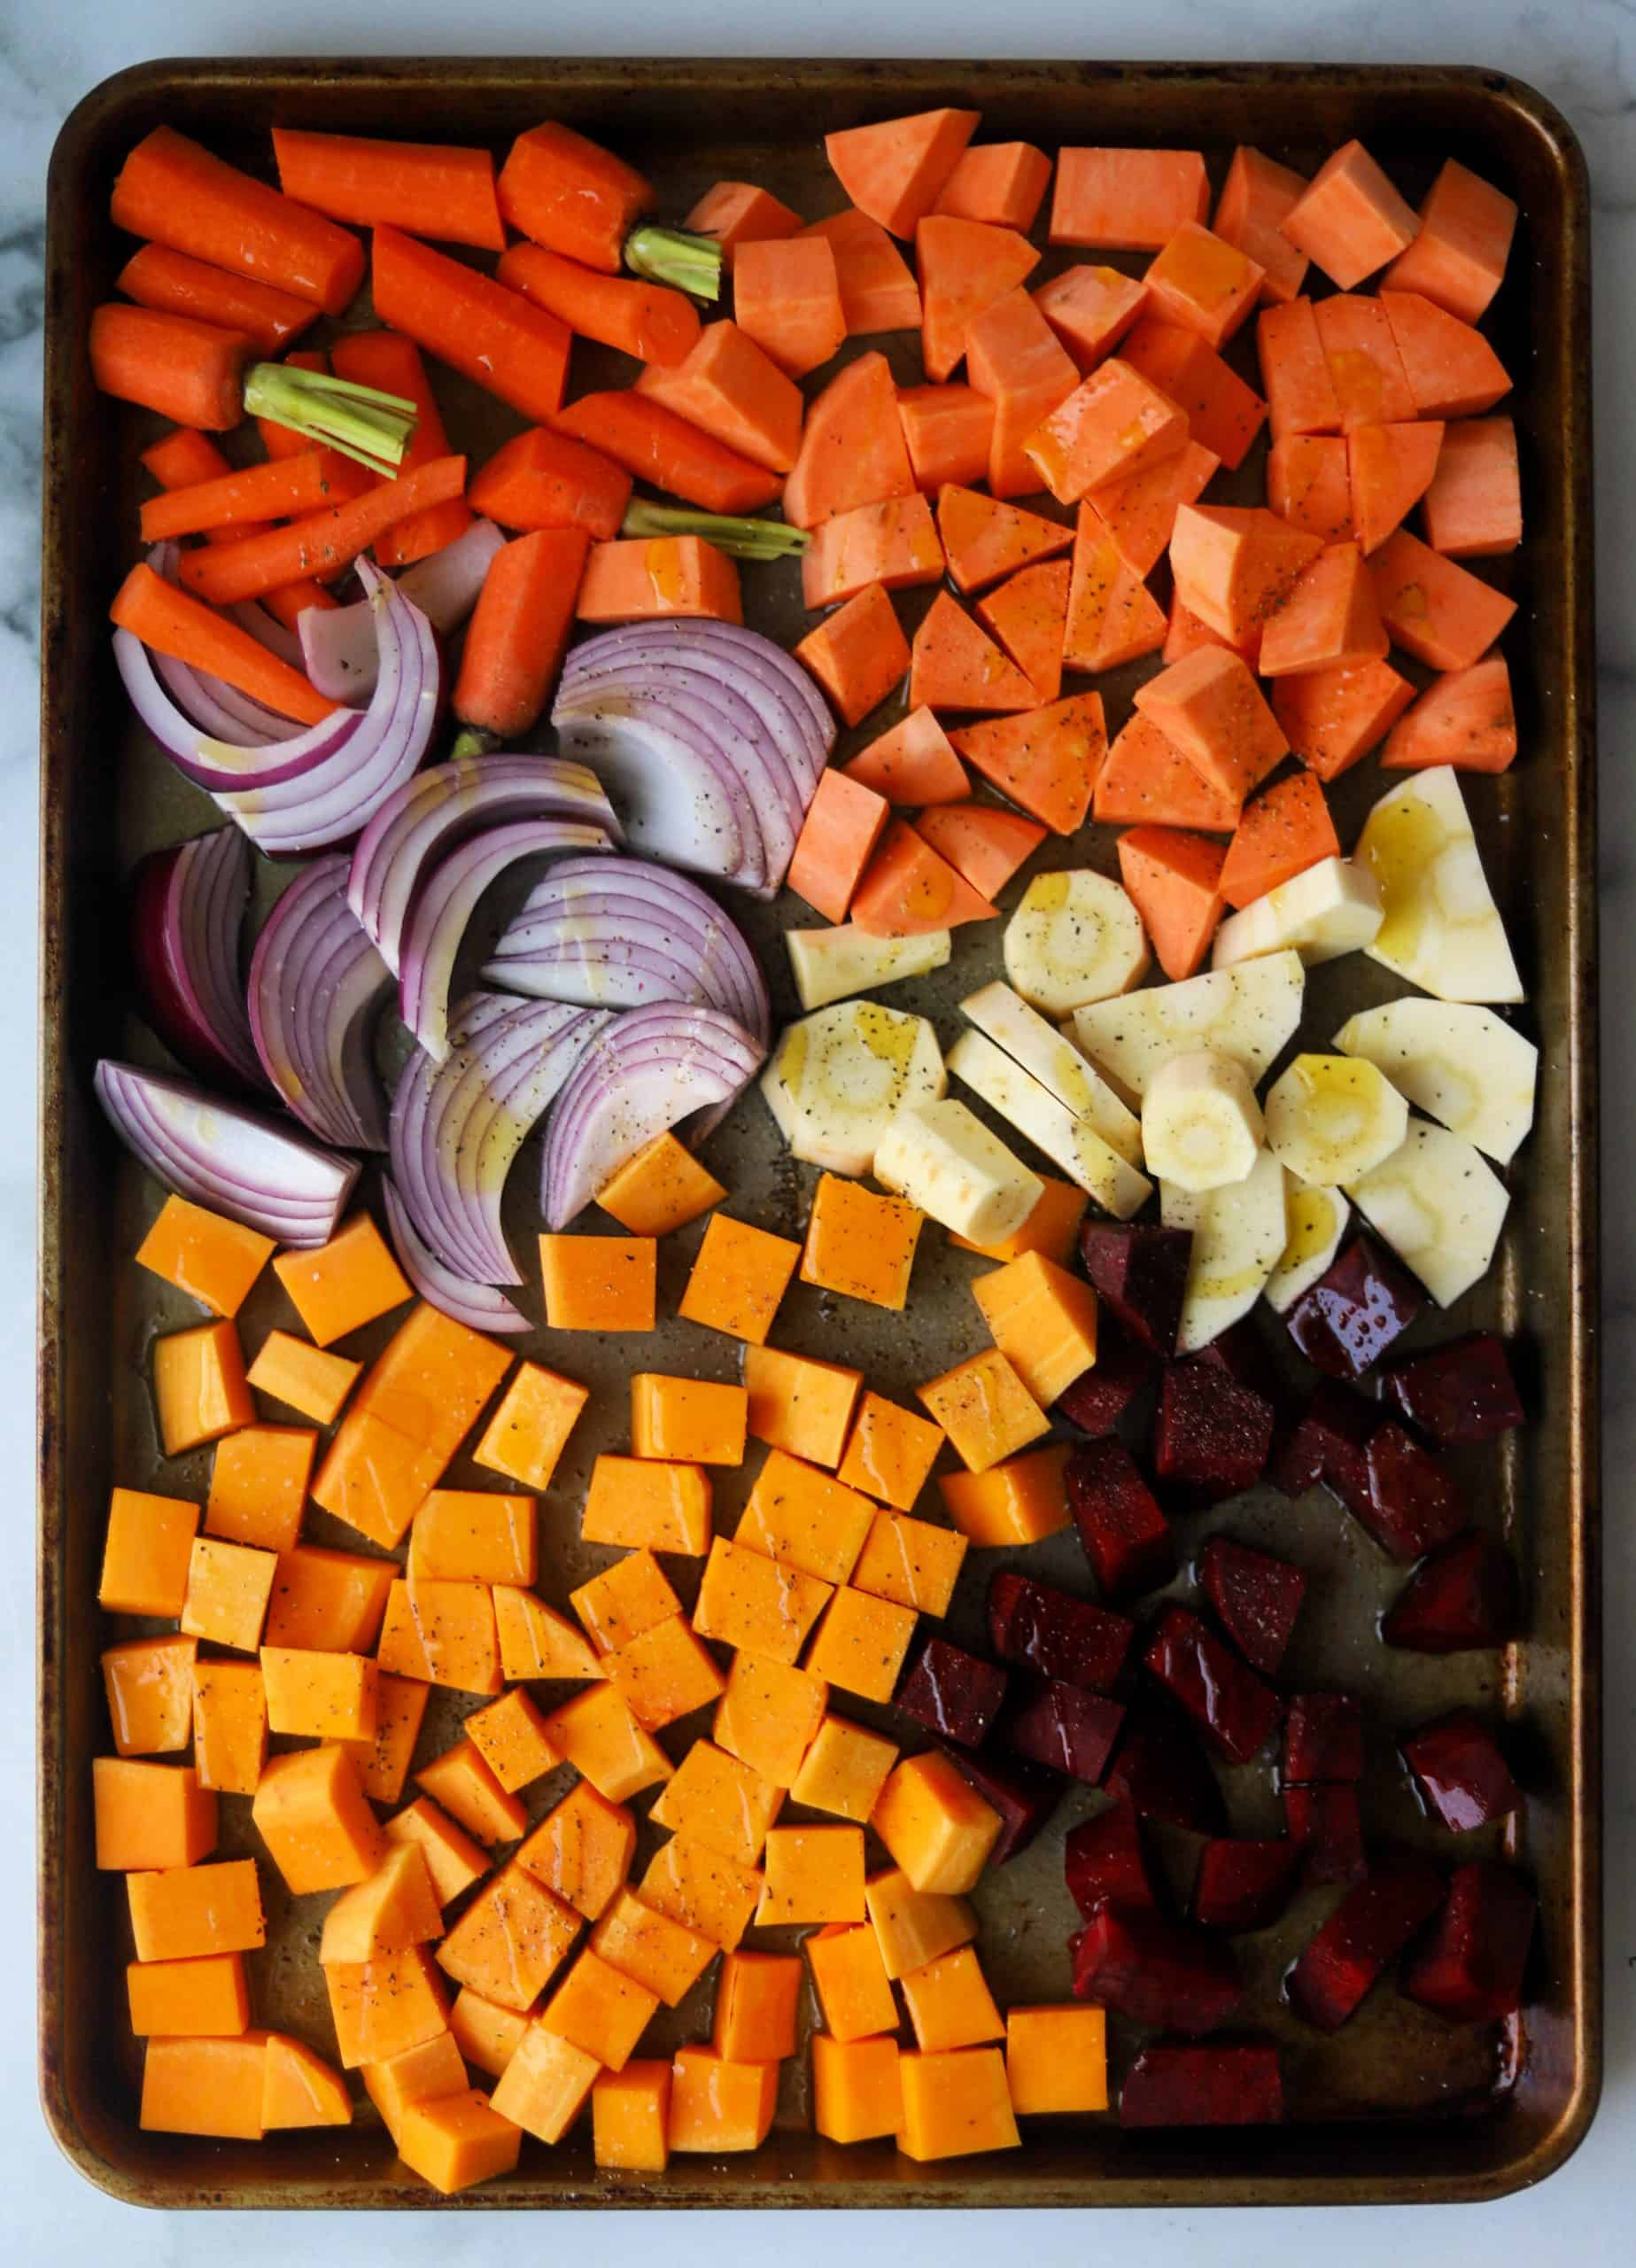 A roasting pan filled with cubed root vegetables.